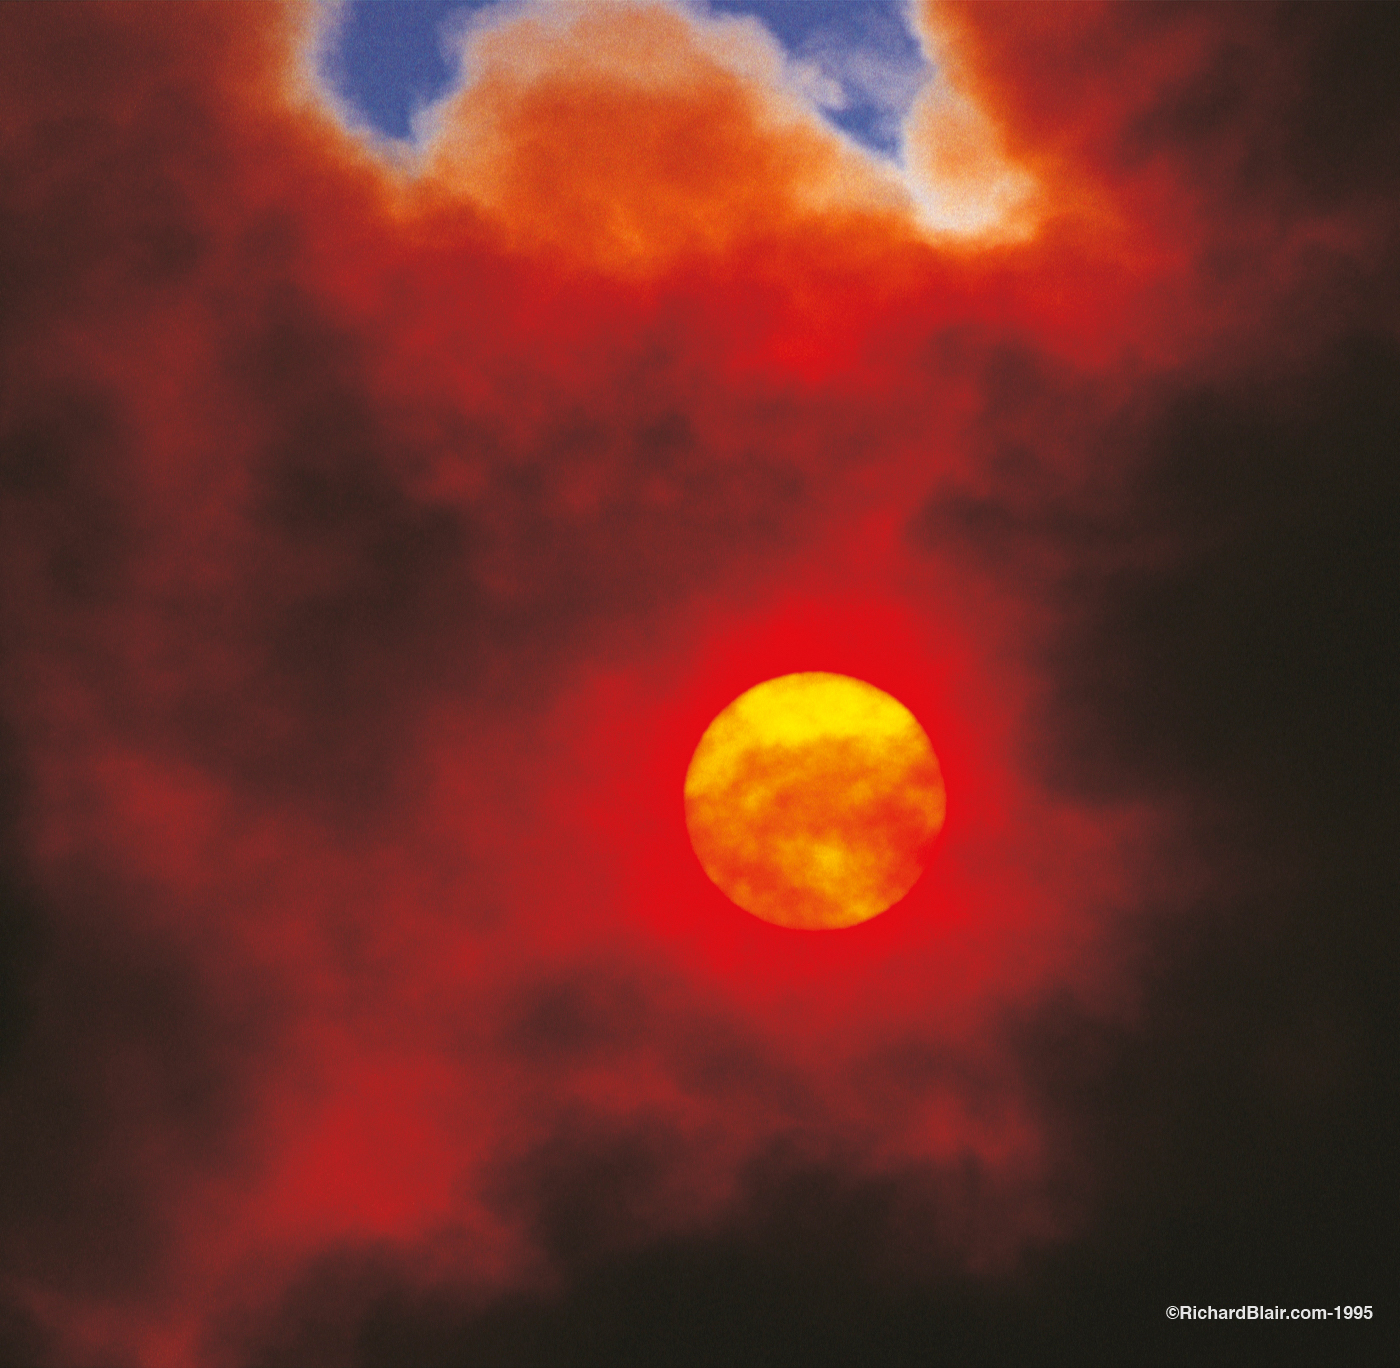 Fire Clouds over the Sun